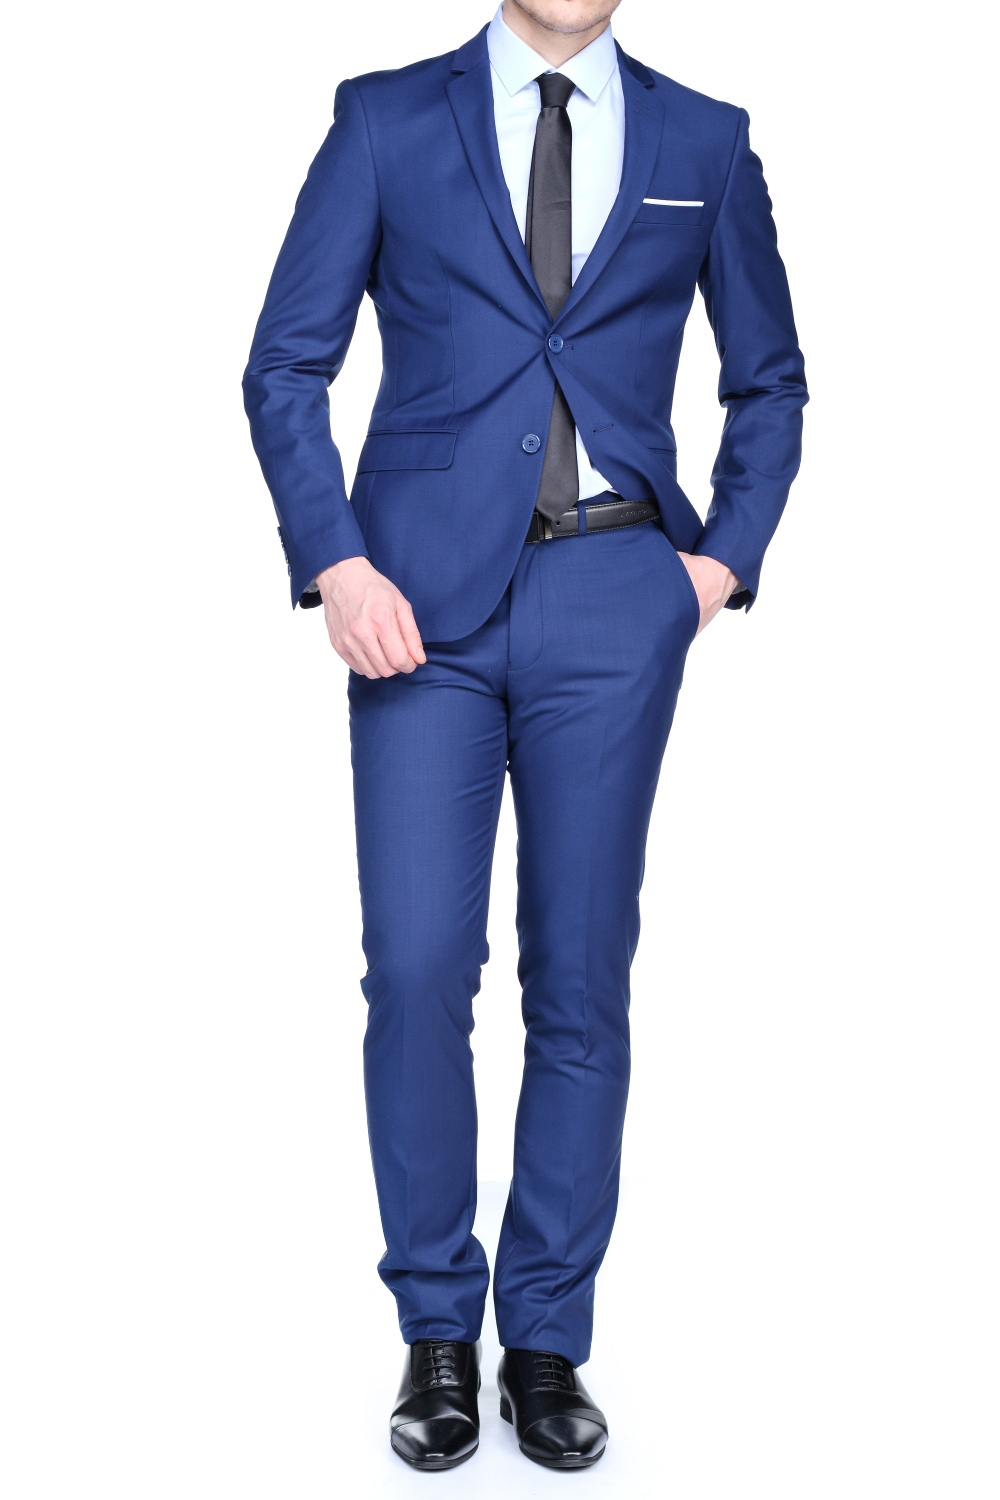 https://www.leadermode.com/121476/jean-louis-scherrer-sch054-jack-uni-royal-blue.jpg